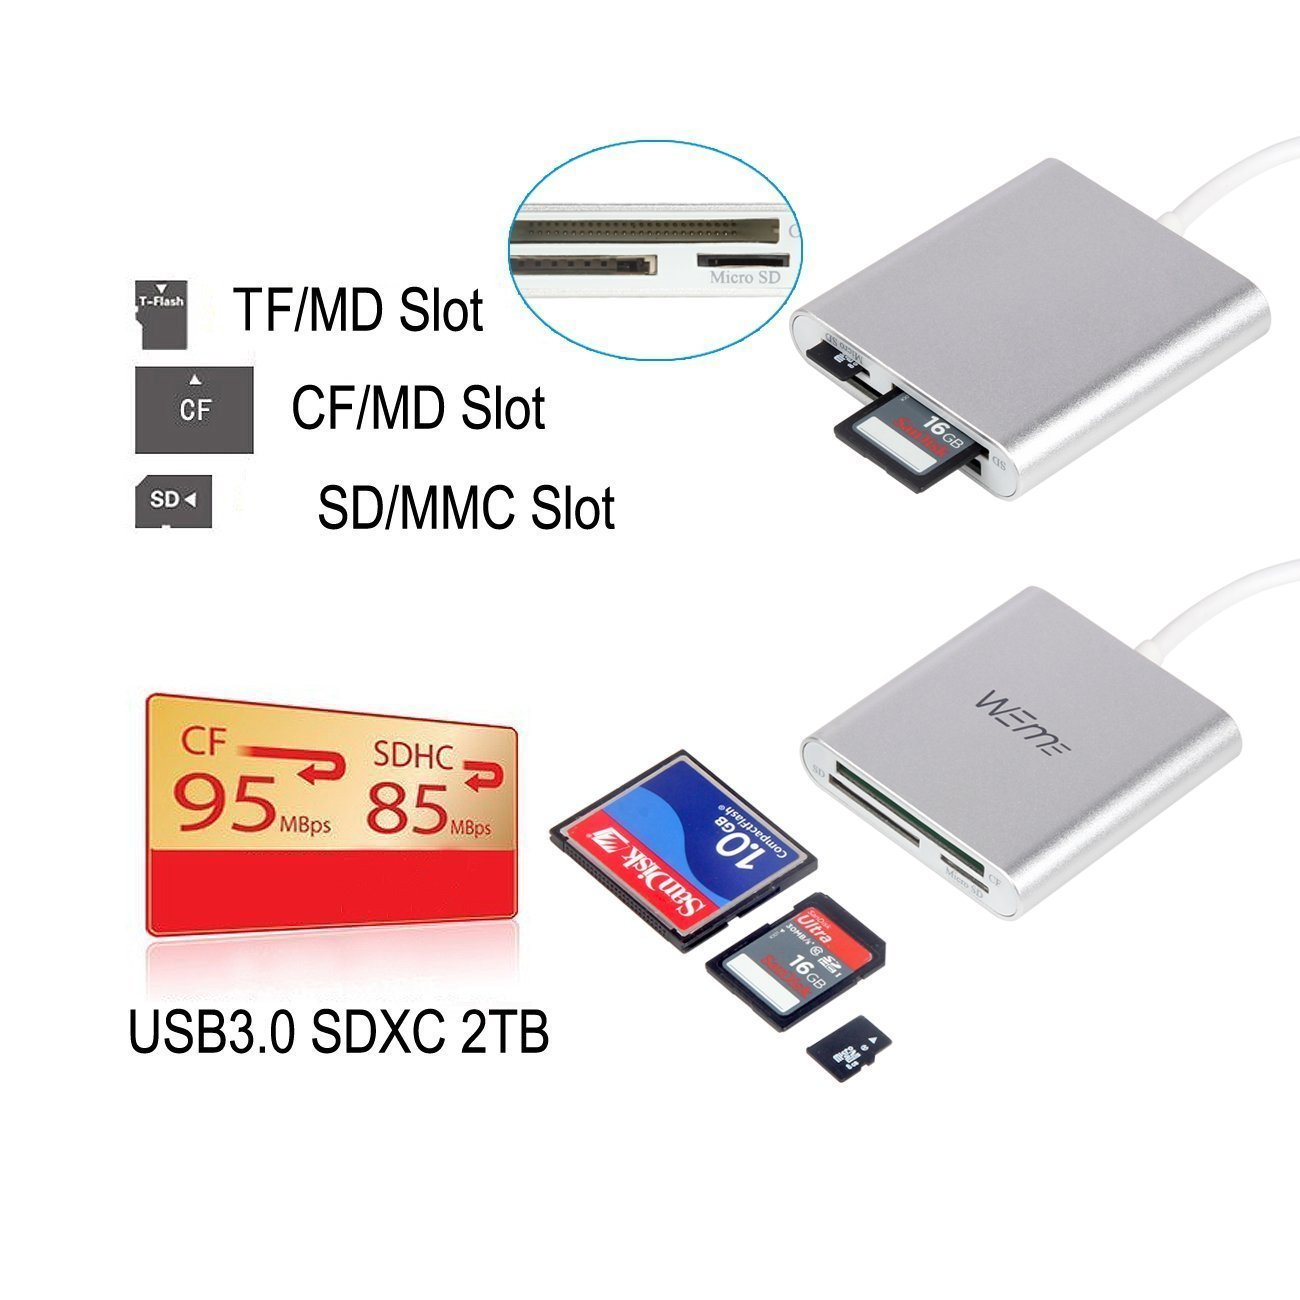 Compact Flash CF Card Reader, WEme Aluminum Multi-in-1 USB 3.0 Micro SD Card Reader with 2-in-1 Type C Adapter for PC, Mac, Macbook Mini, USB C Devices, Support Sandisk/ Lexar UHS, SDHC Memory Card by WEme (Image #7)